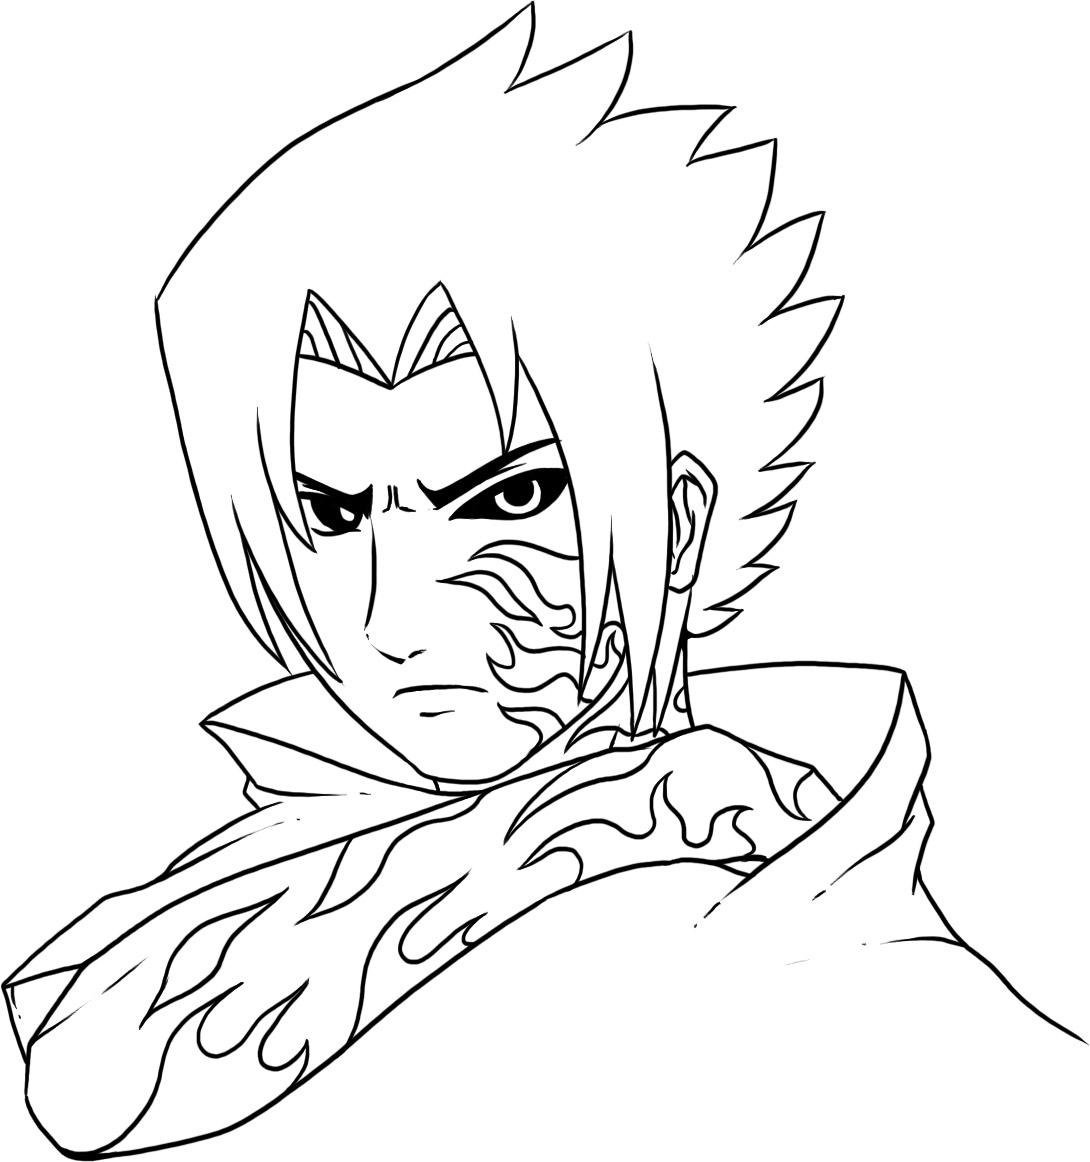 naruto coloring pages naruto coloring pages naruto pages coloring 1 3